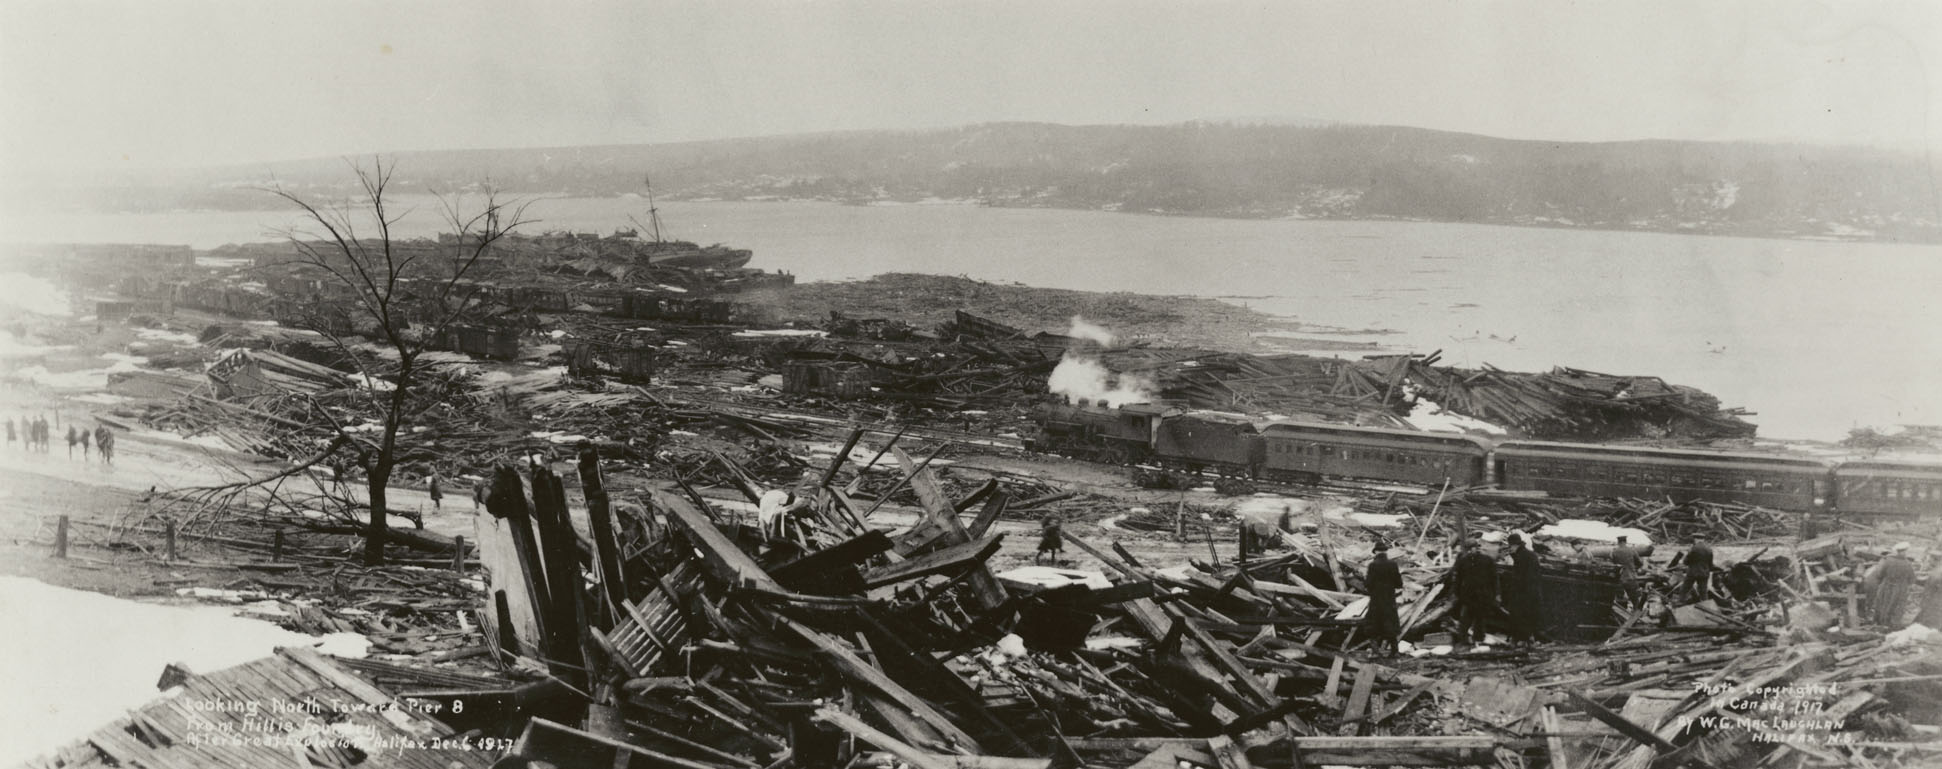 Explosion : Looking north toward Pier 8 from Hillis foundry after great explosion, Halifax, Dec. 6, 1917